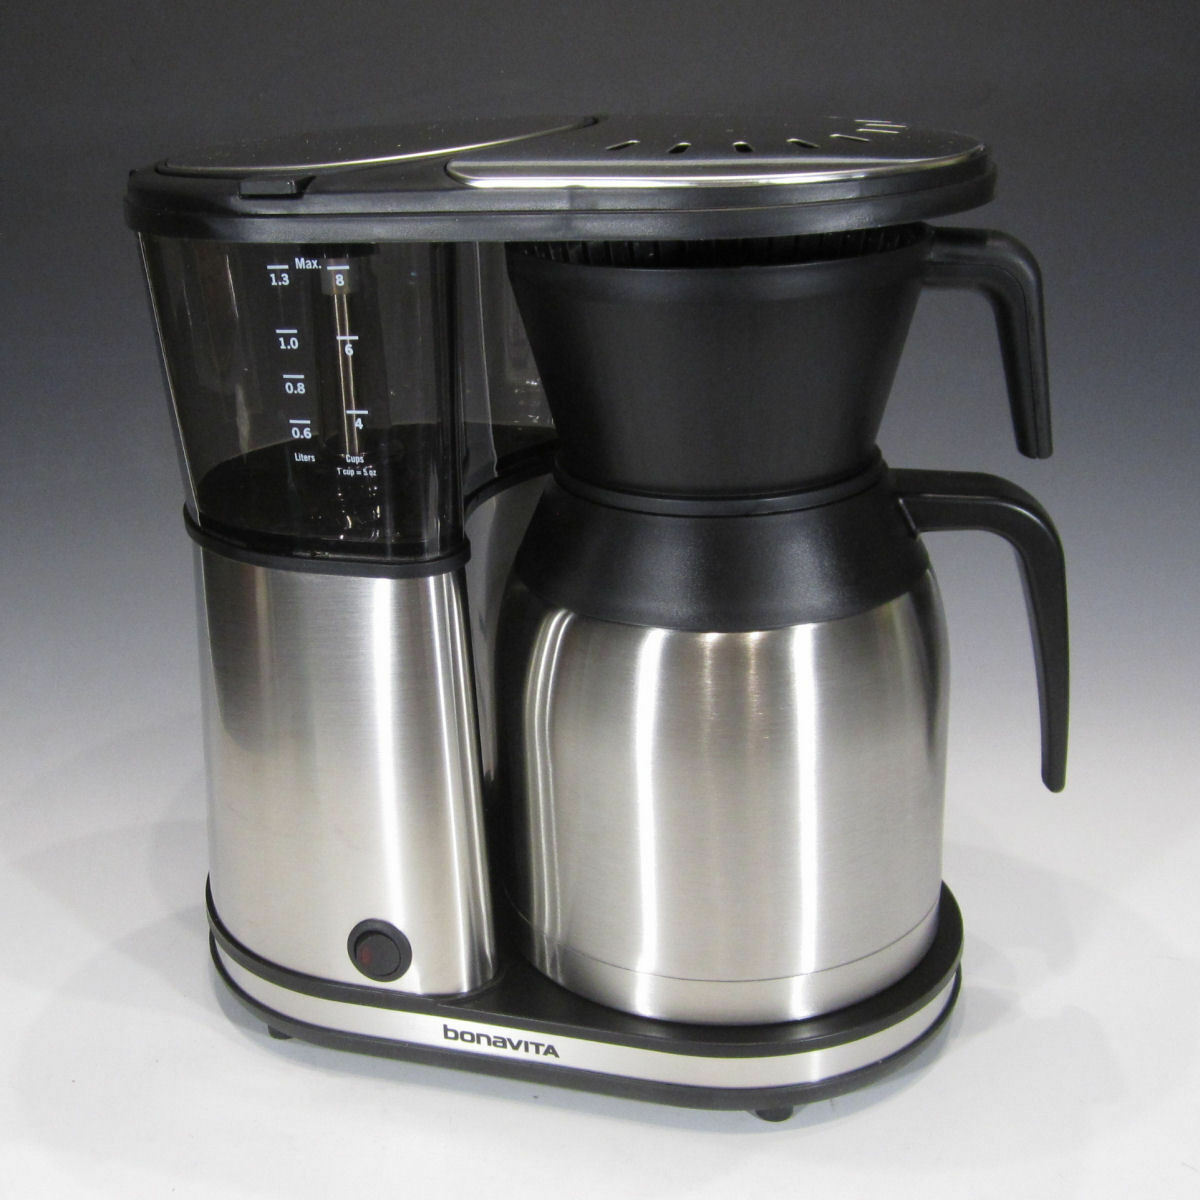 Bonavita Coffee Maker, 8-Cup Stainless Steel Carafe, BV1900T